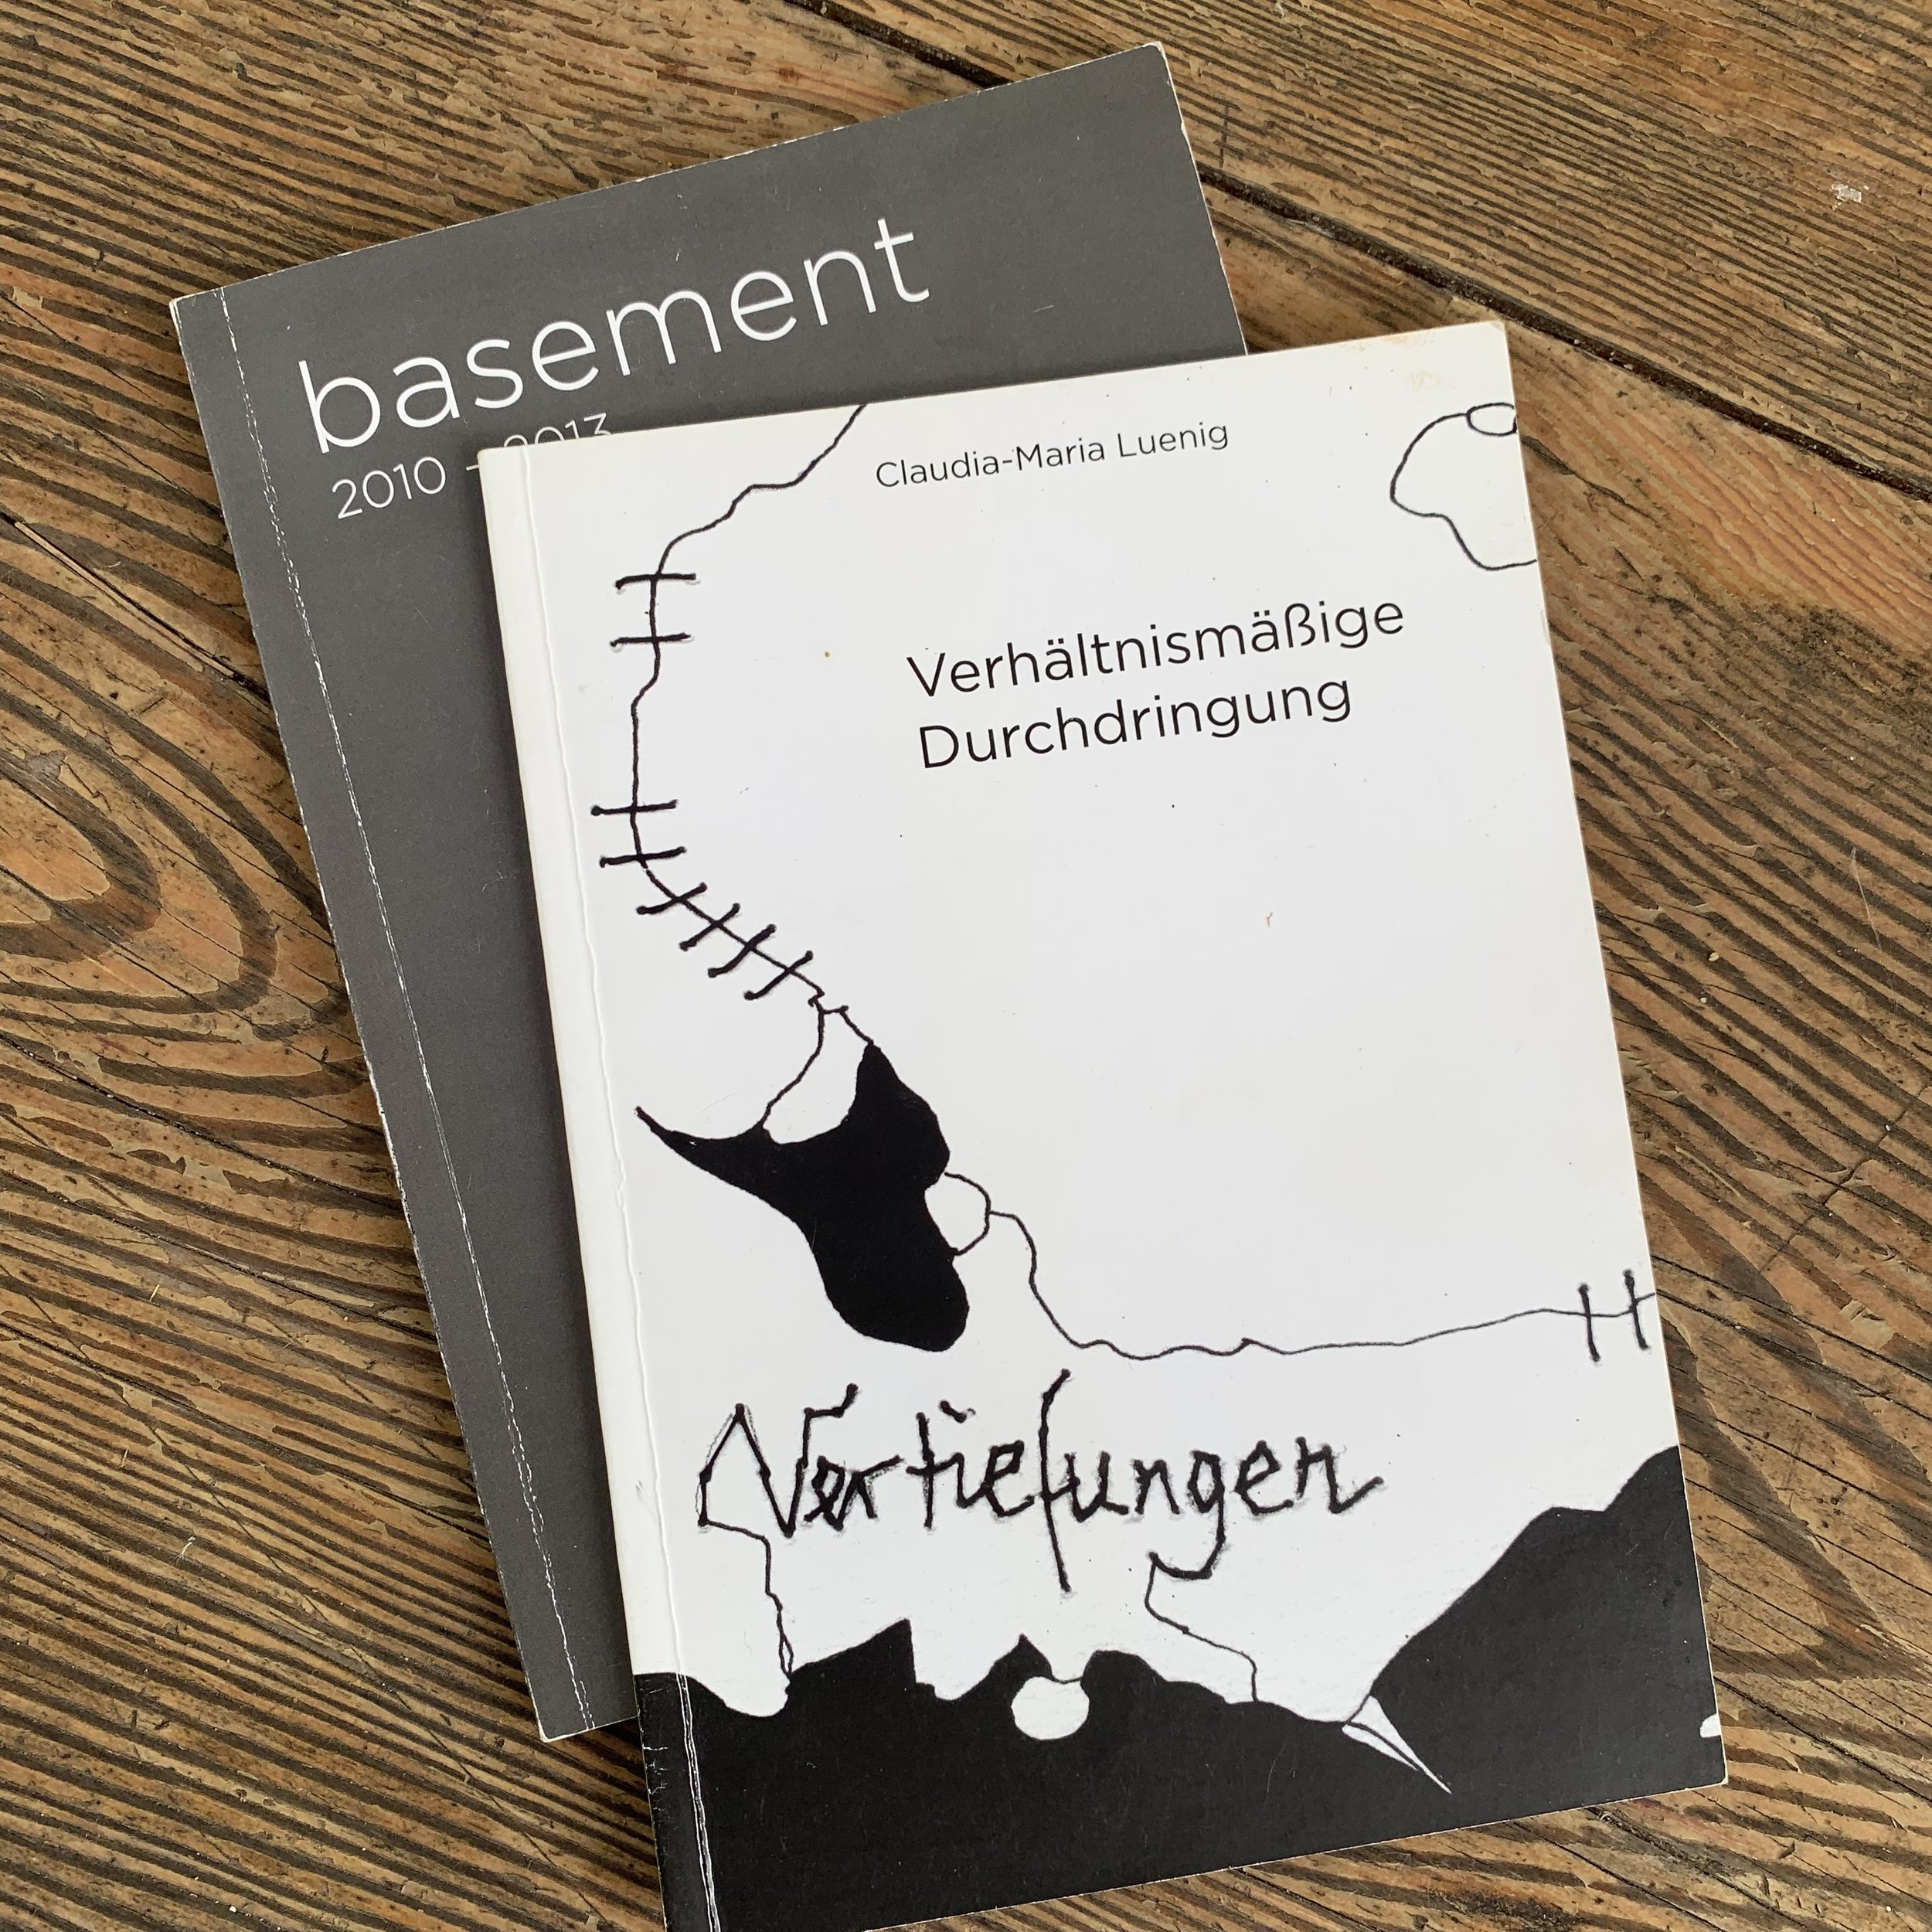 Catalogues for basement gallery in Vienna, Austria and a catalogue of the works of artist/curator Claudia-Maria Luenig.